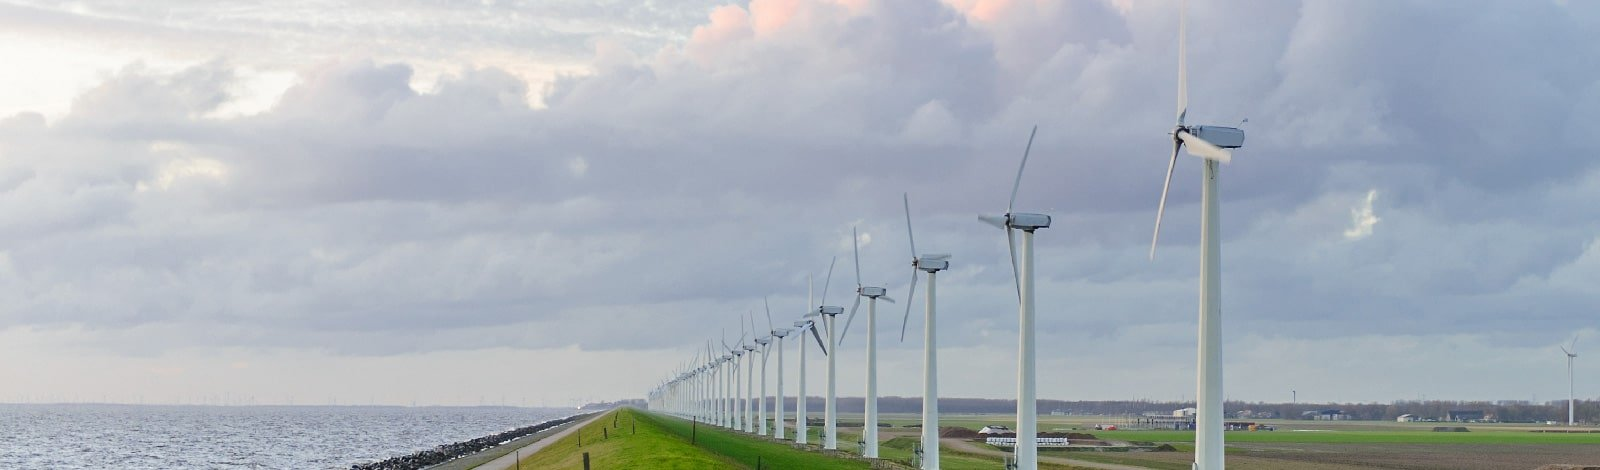 A row of environmentally sustainable windmills on a cloudy day